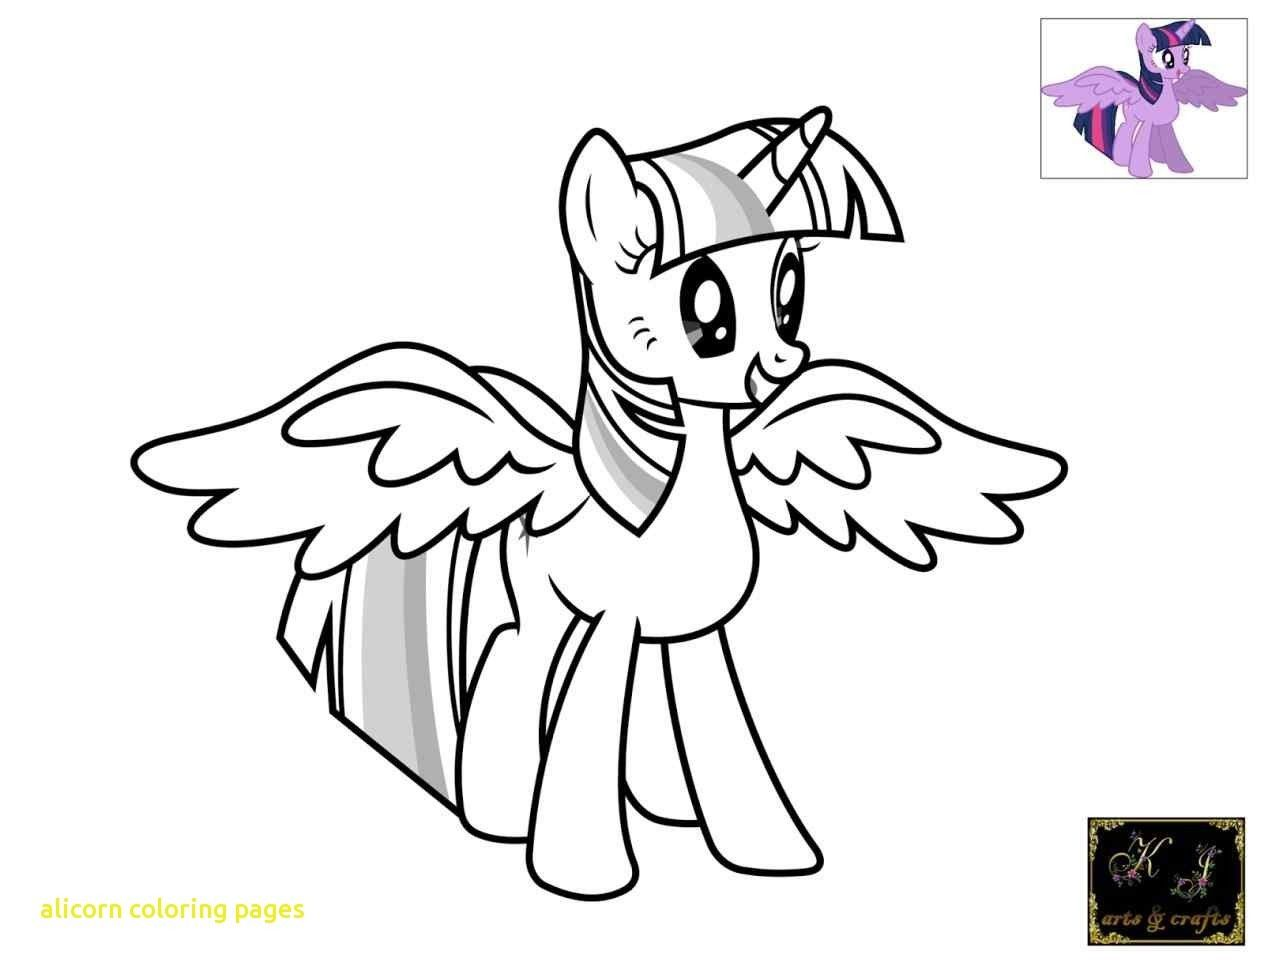 Princess Twilight Coloring Page From The Thousand Images On The Net In Relation To Princess Twilight Coloring Page Selects The V Buku Mewarnai Gambar Warna